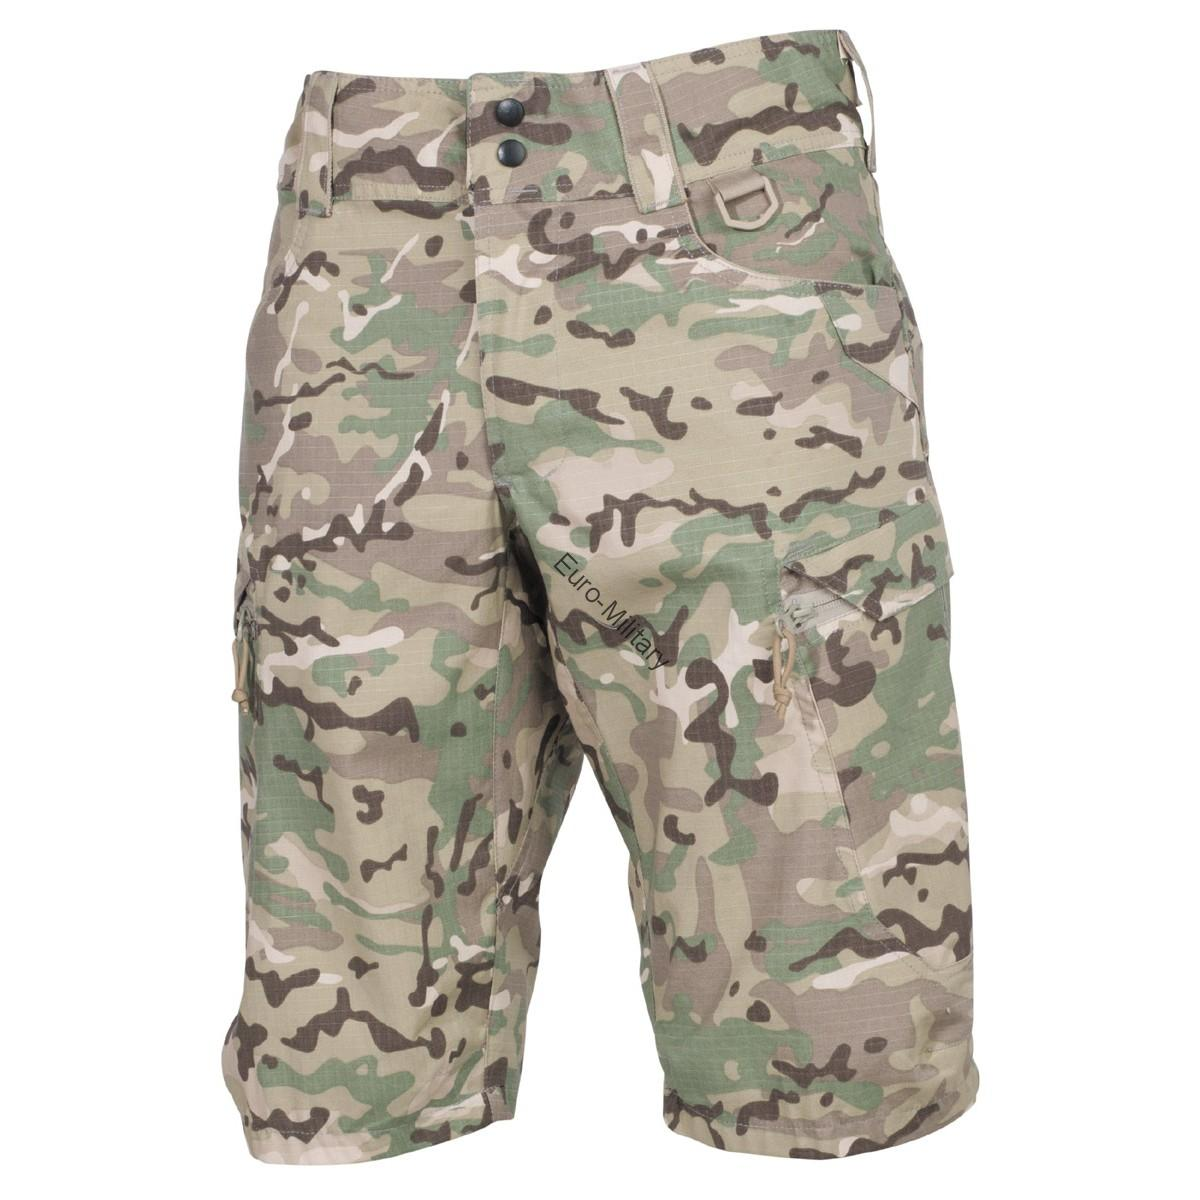 "Professional Tactical Military Battle Army Shorts ""Defense"" Rip Stop - Multicam"